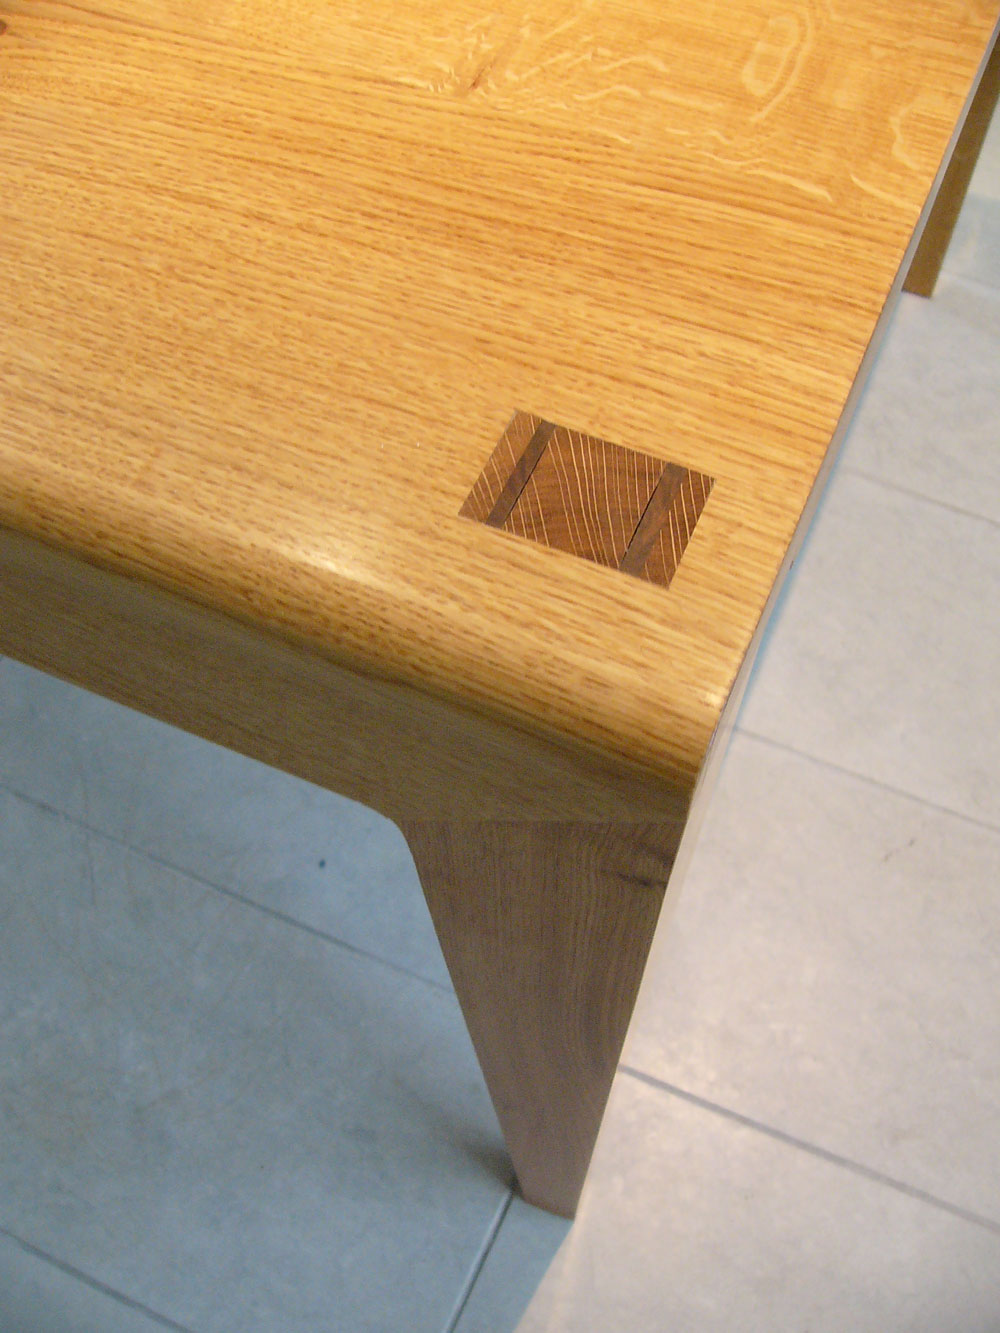 smith_table_detail_1.jpg